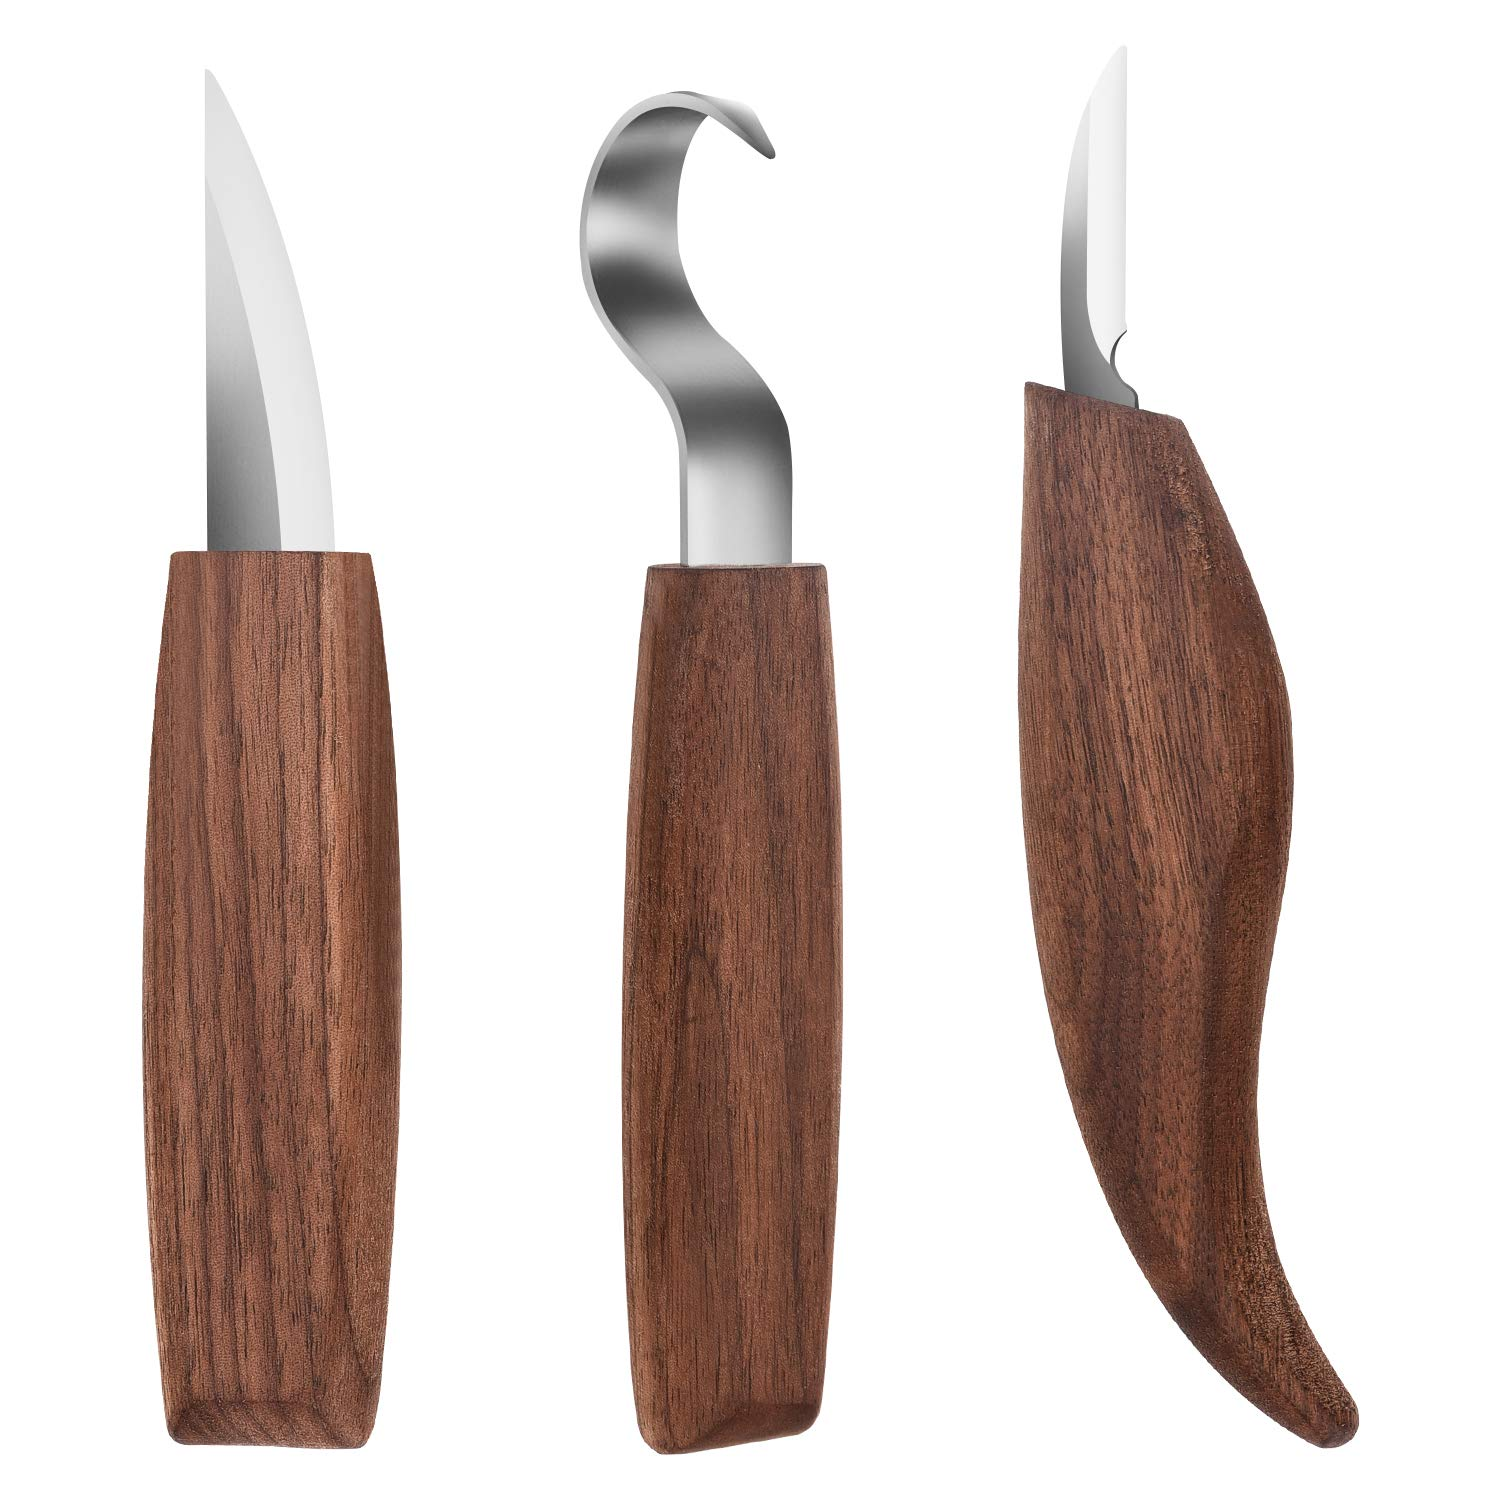 FUNTECK Wood Carving 6-Tool Set for Wood Spoon Kuksa Cup and Bowl Carving